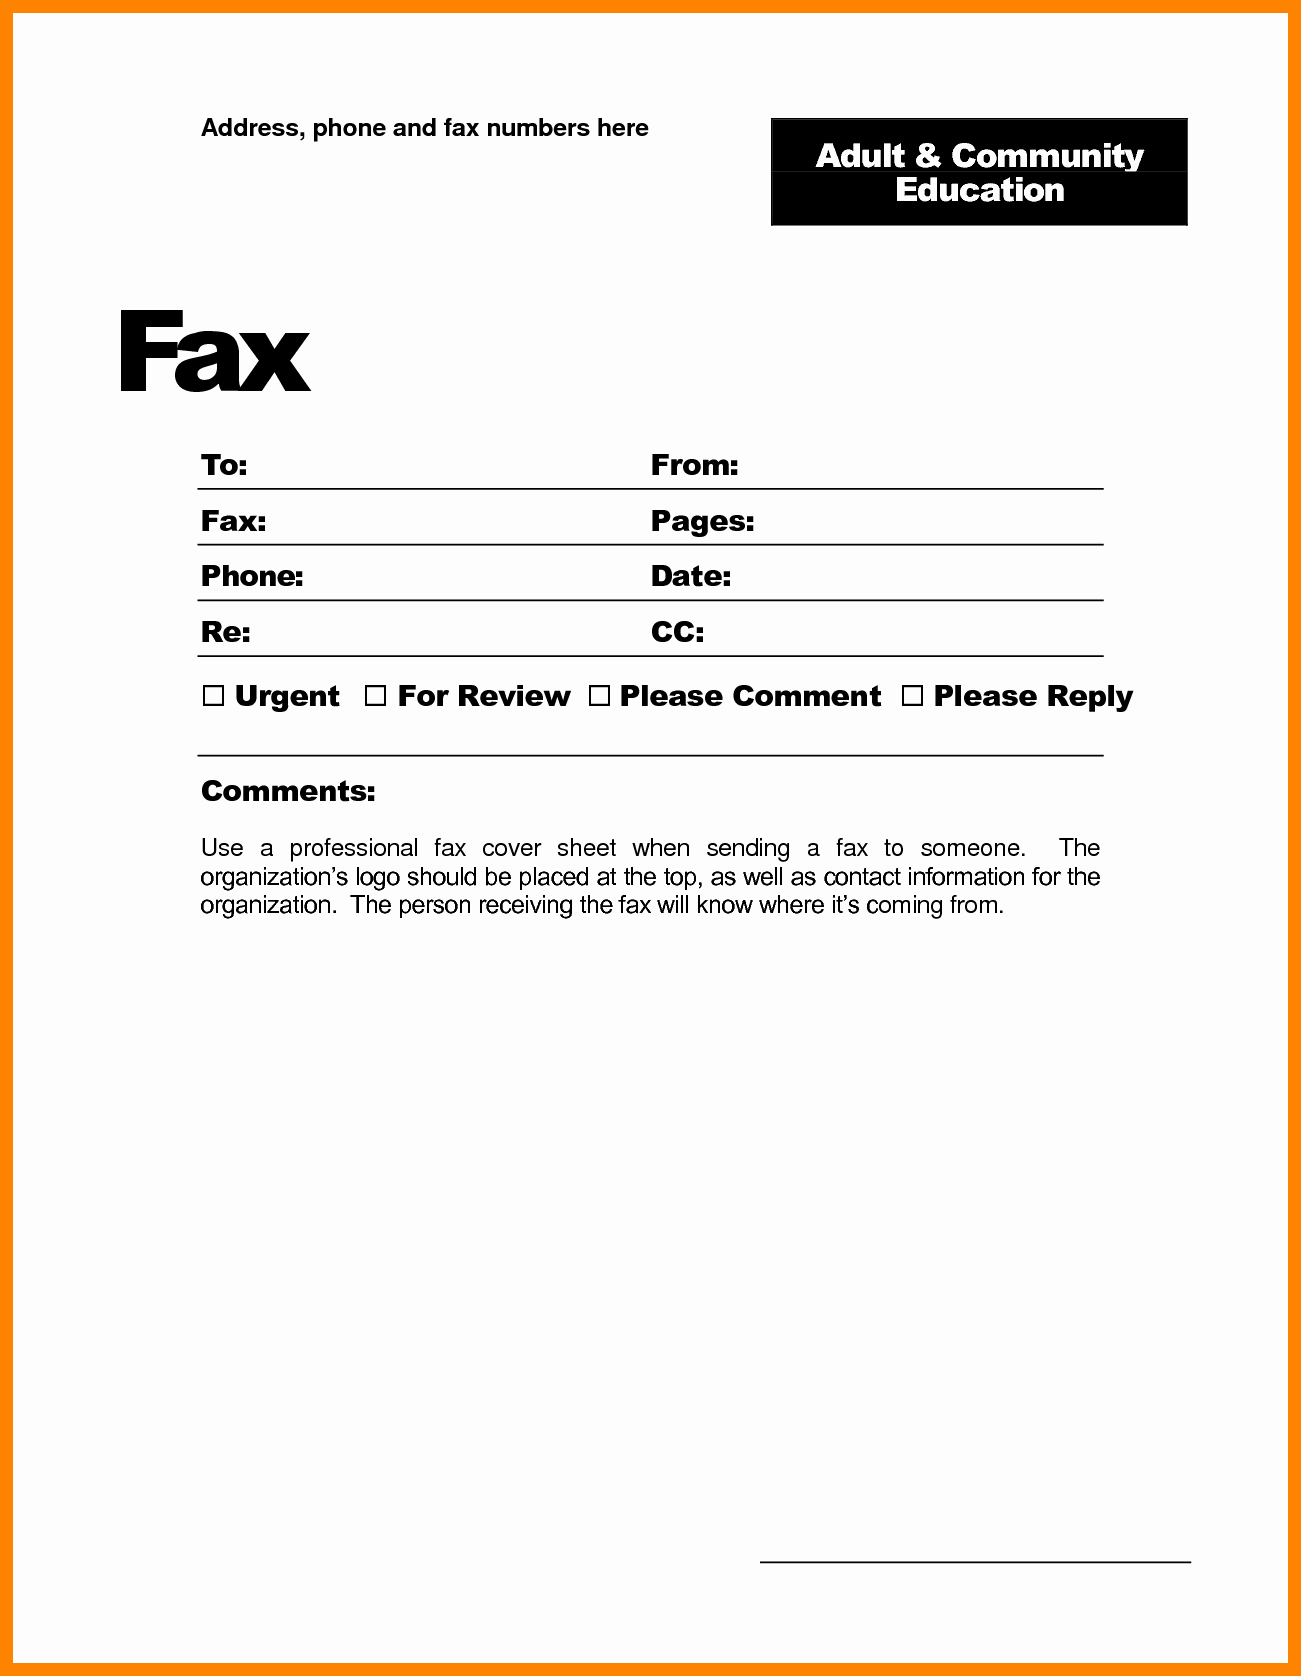 Fax Cover Sheet Template Microsoft Lovely Fax Cover Template Word Portablegasgrillweber